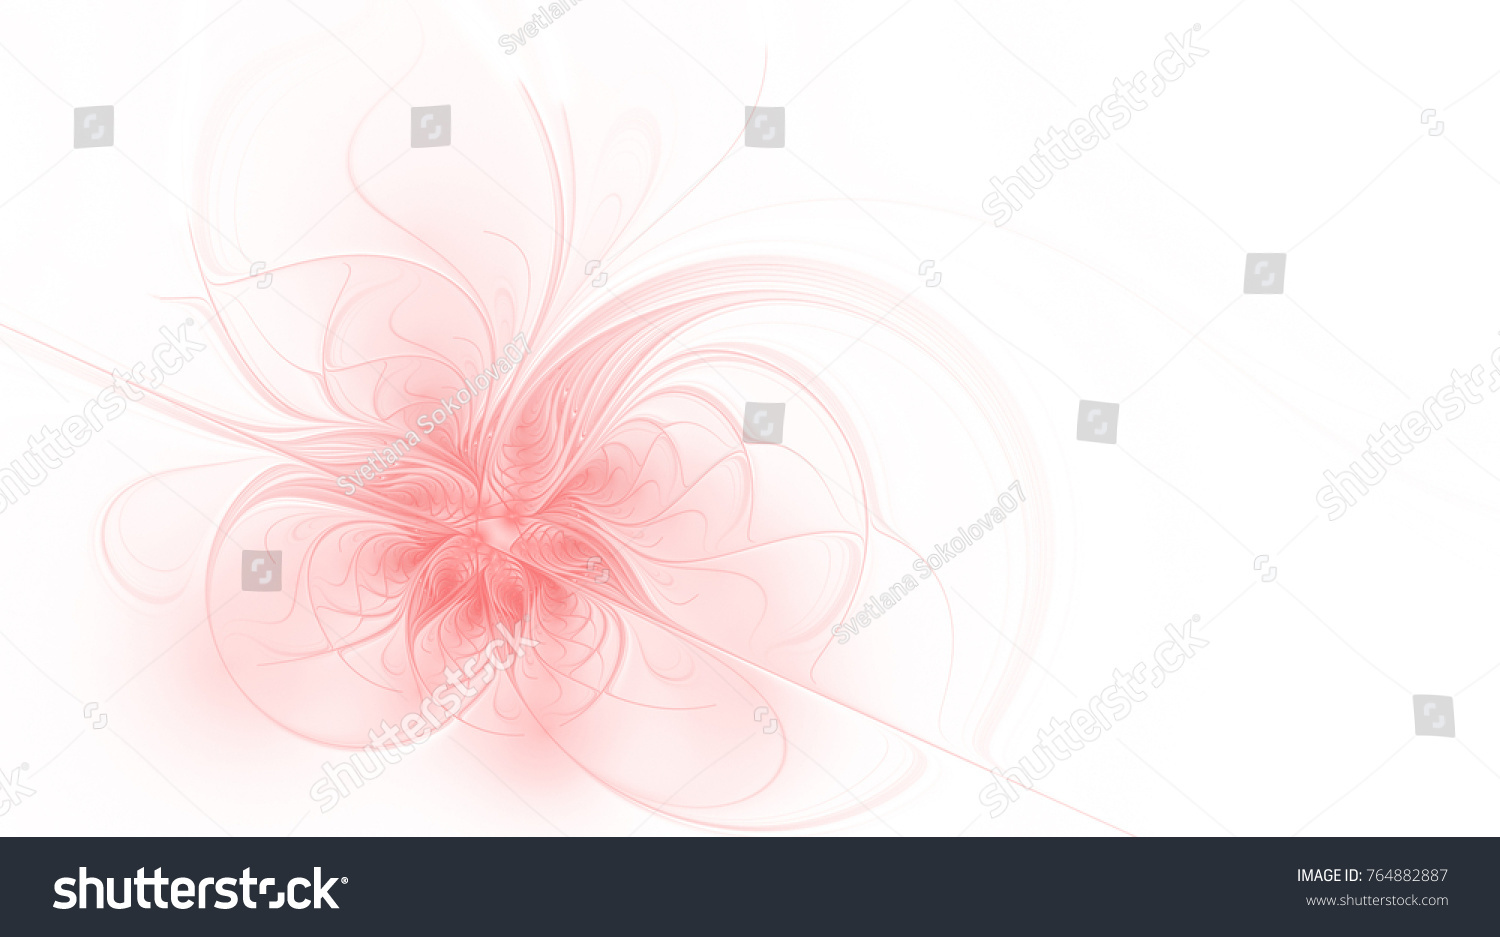 Abstract Fractal Pale Pink Flower On A White Background With Copy